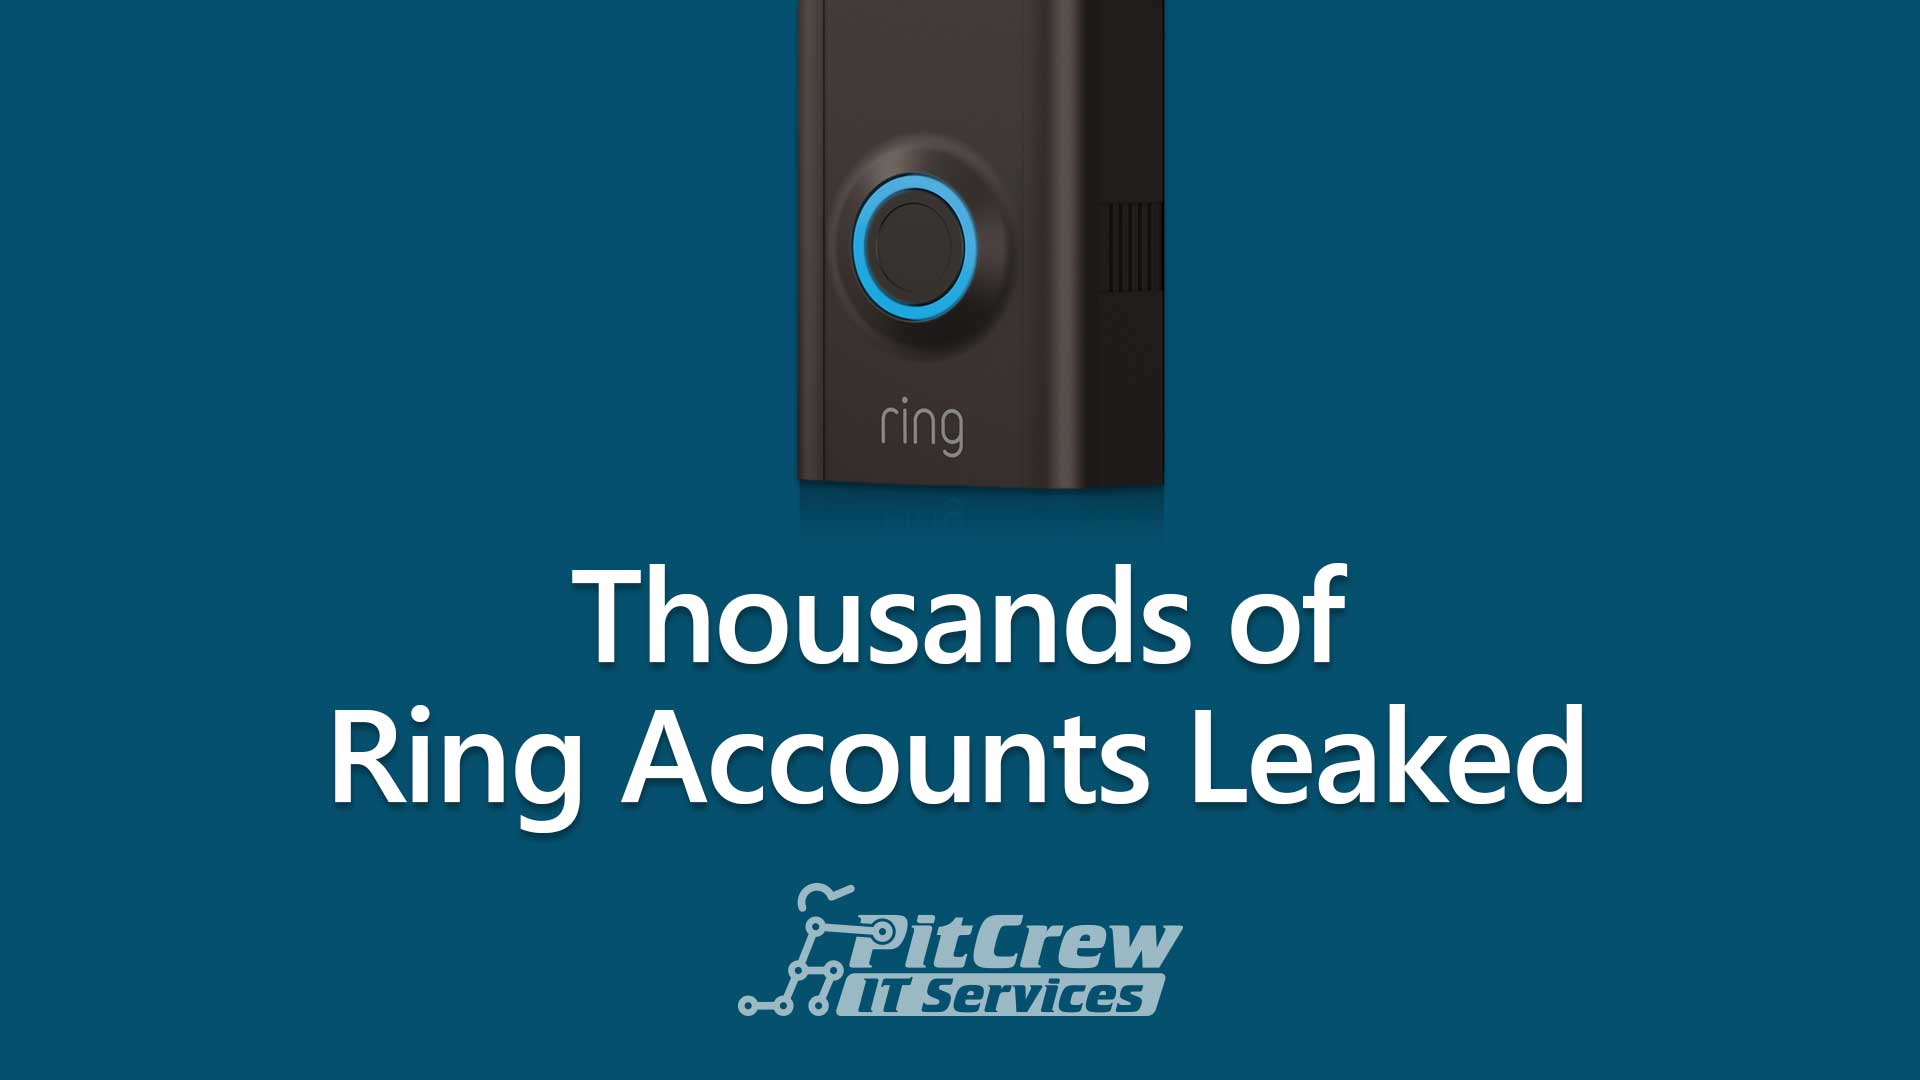 Thousands of Ring Accounts Leaked